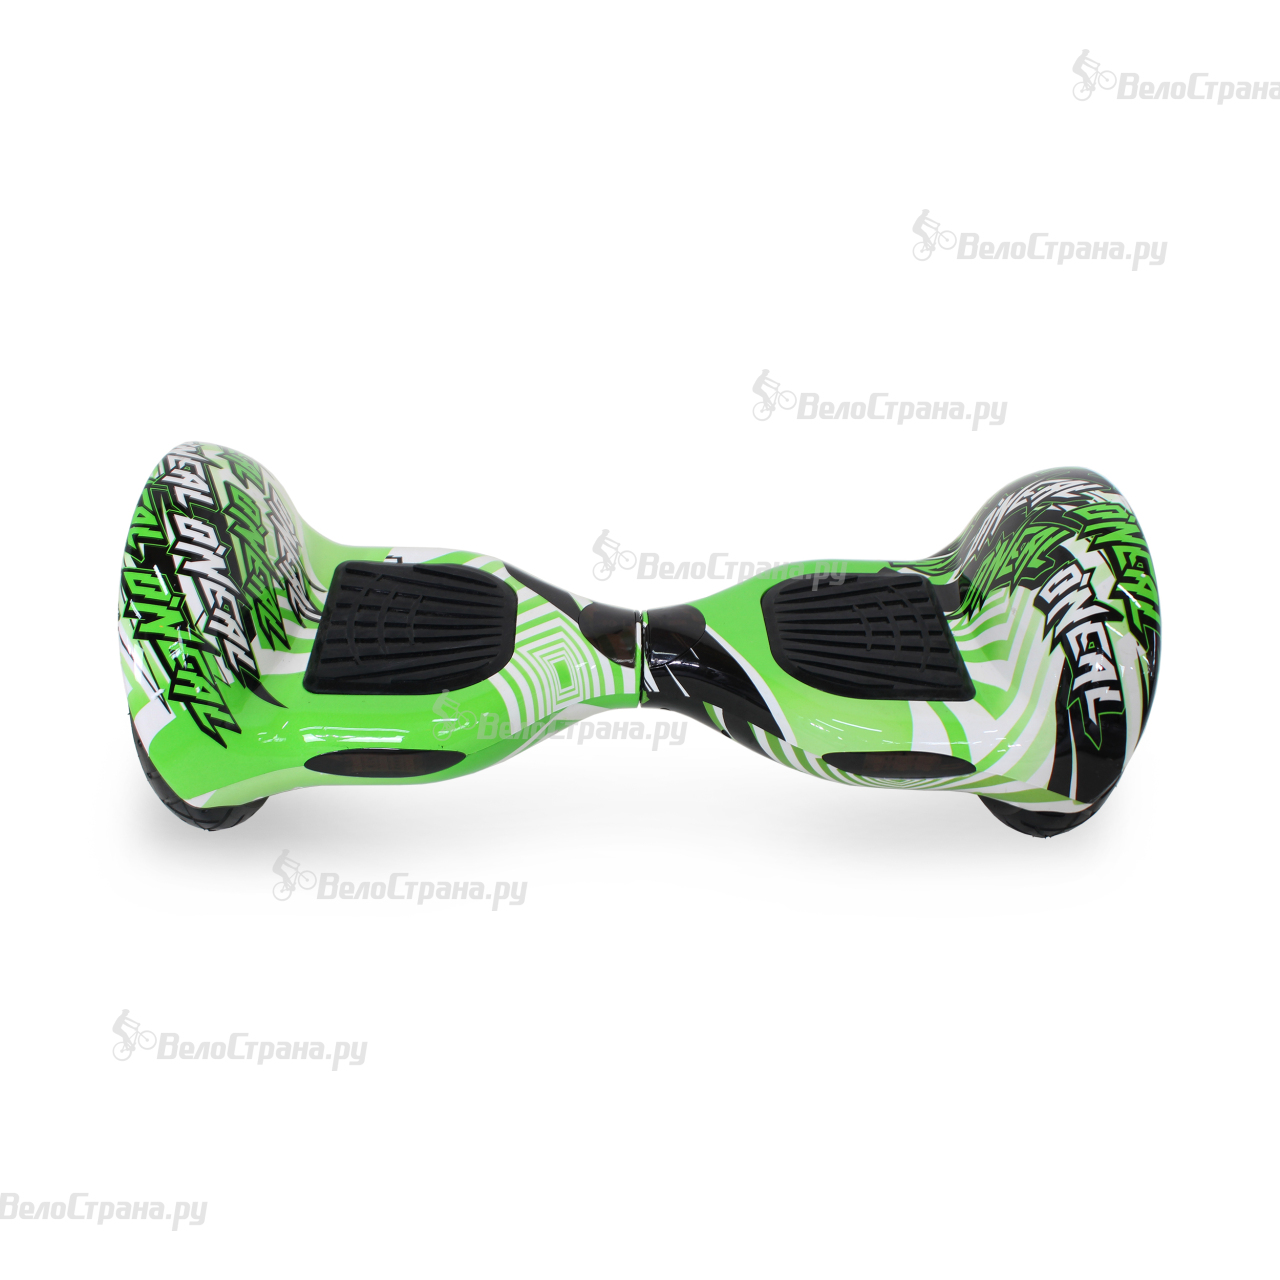 Hoverbot C-1 Light Green multicolor гироскутер hoverbot c 1 light цвет green multicolor зеленый мультиколор